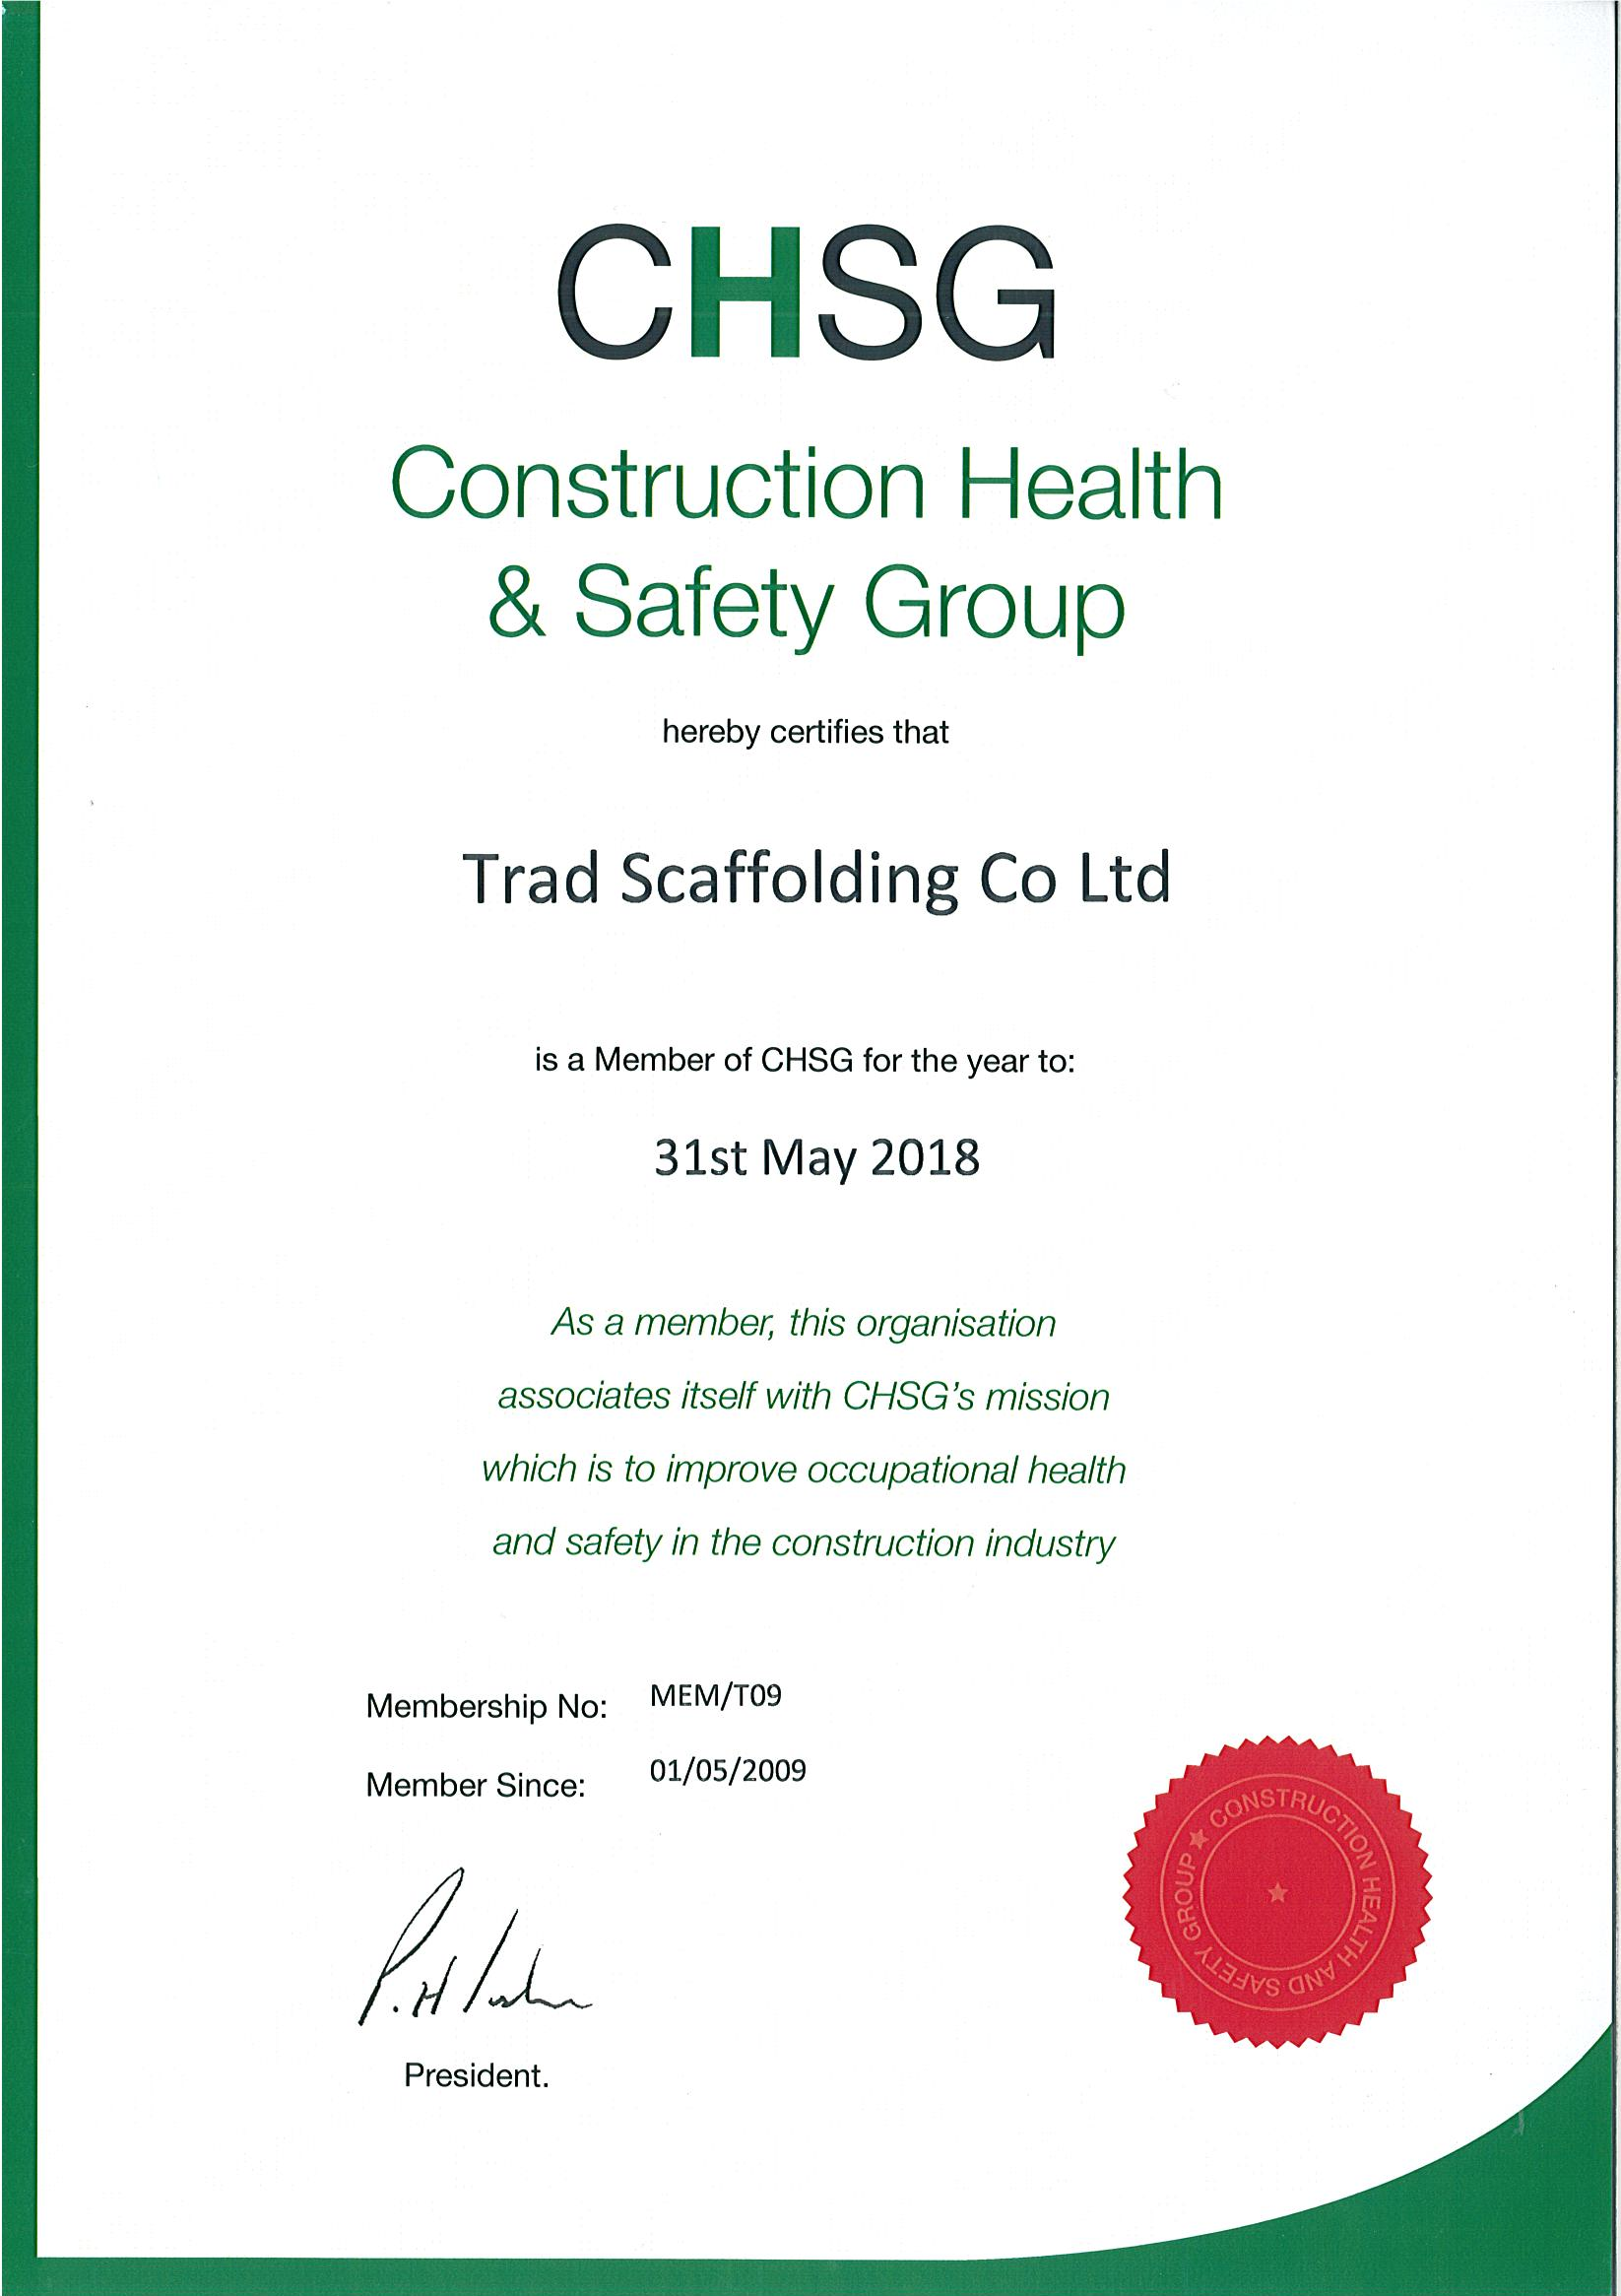 Construction health and safety group (CHSG)